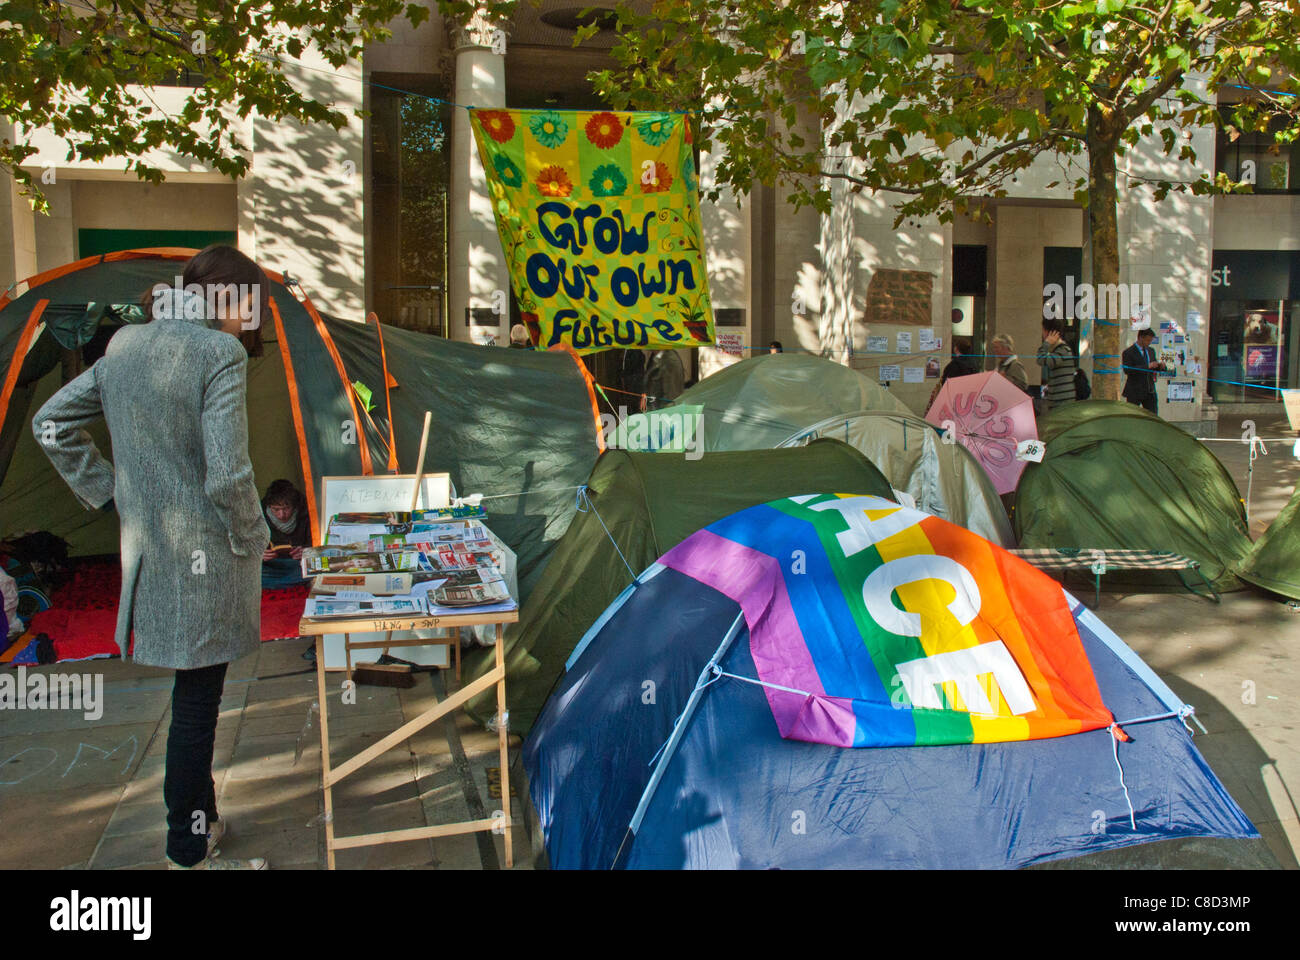 St Pauls, Occupy London, anti capitalist camp. 'Peace' and 'Grow your own future' banners above - Stock Image